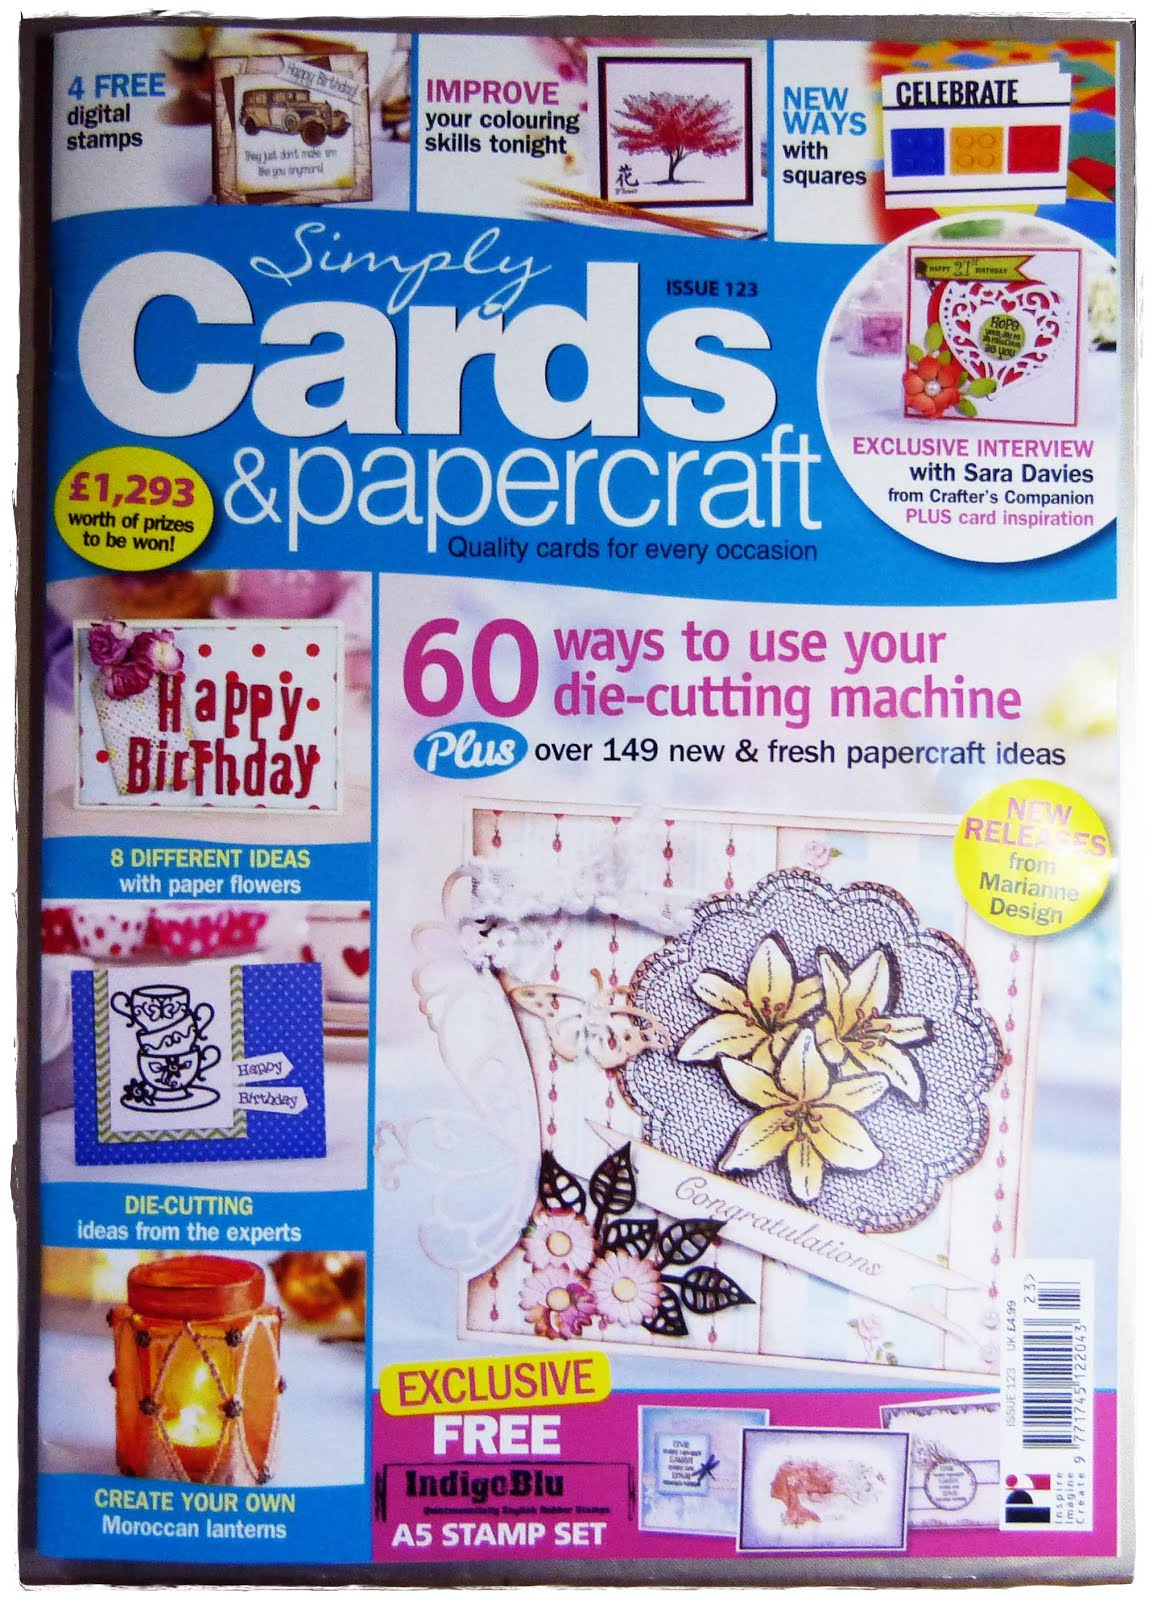 Published Simply Cards & Papercrafts Issue 123